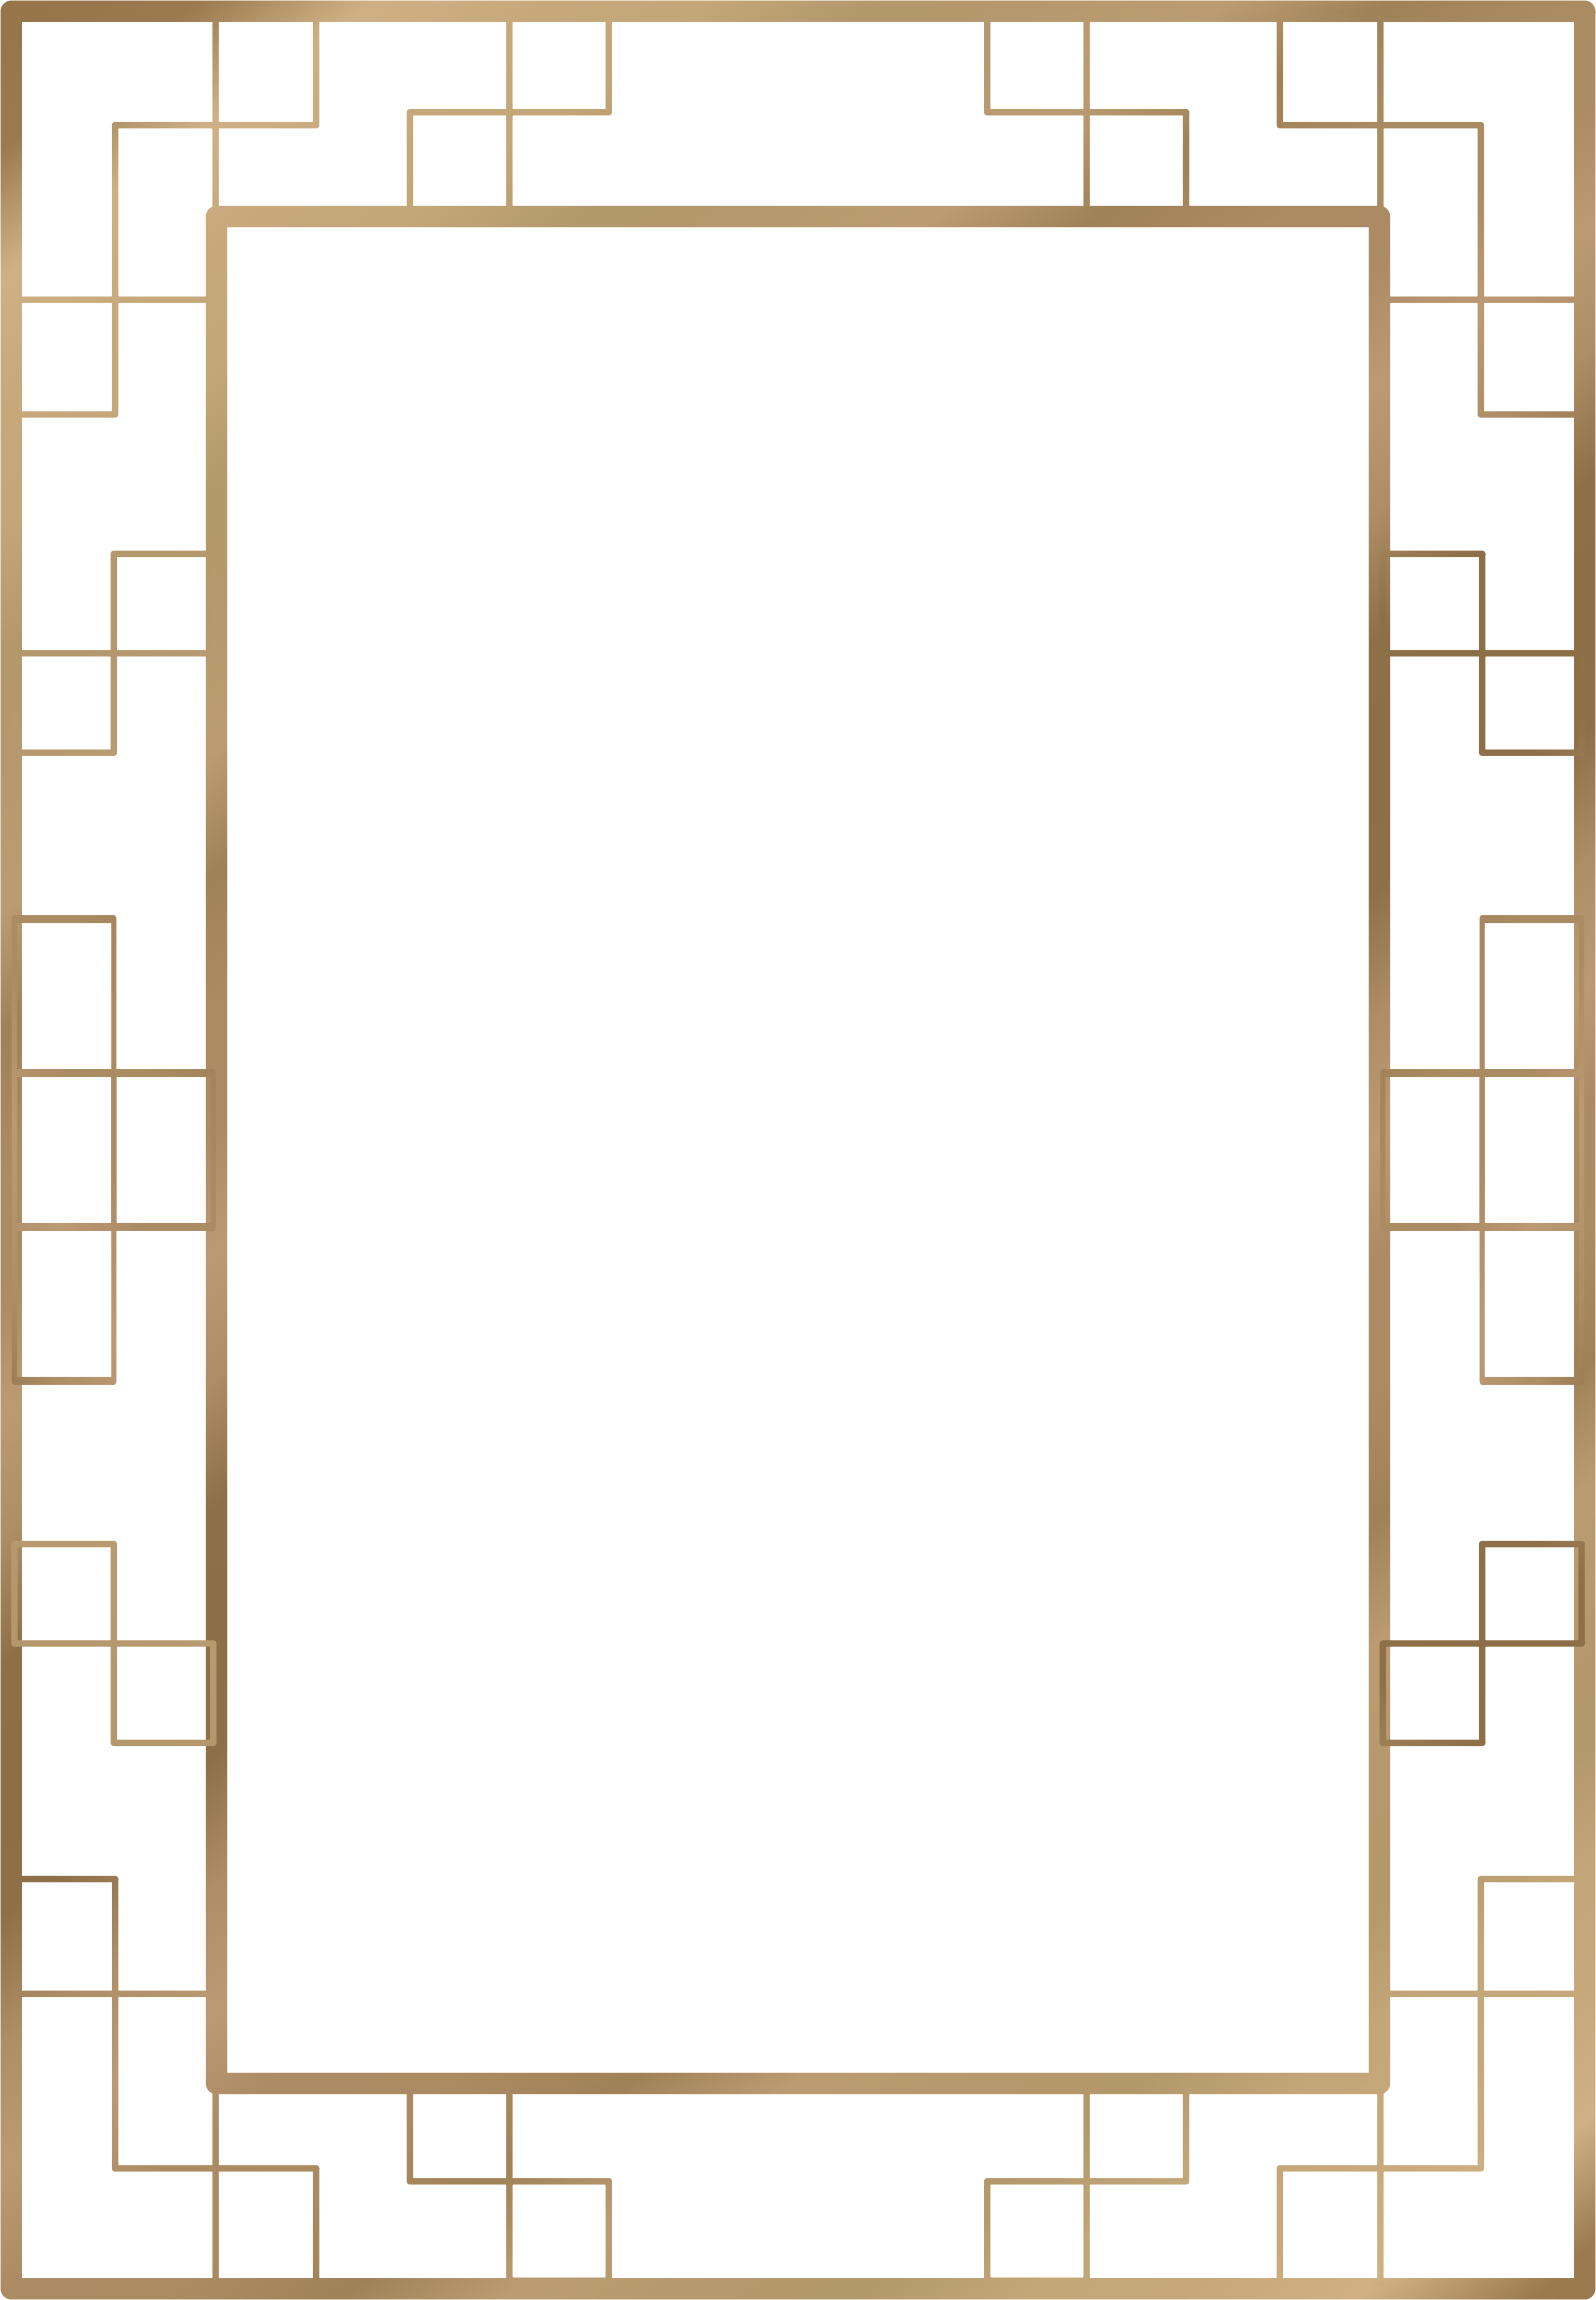 Art Deco Border 7 (A4 size) by Arvin61r58